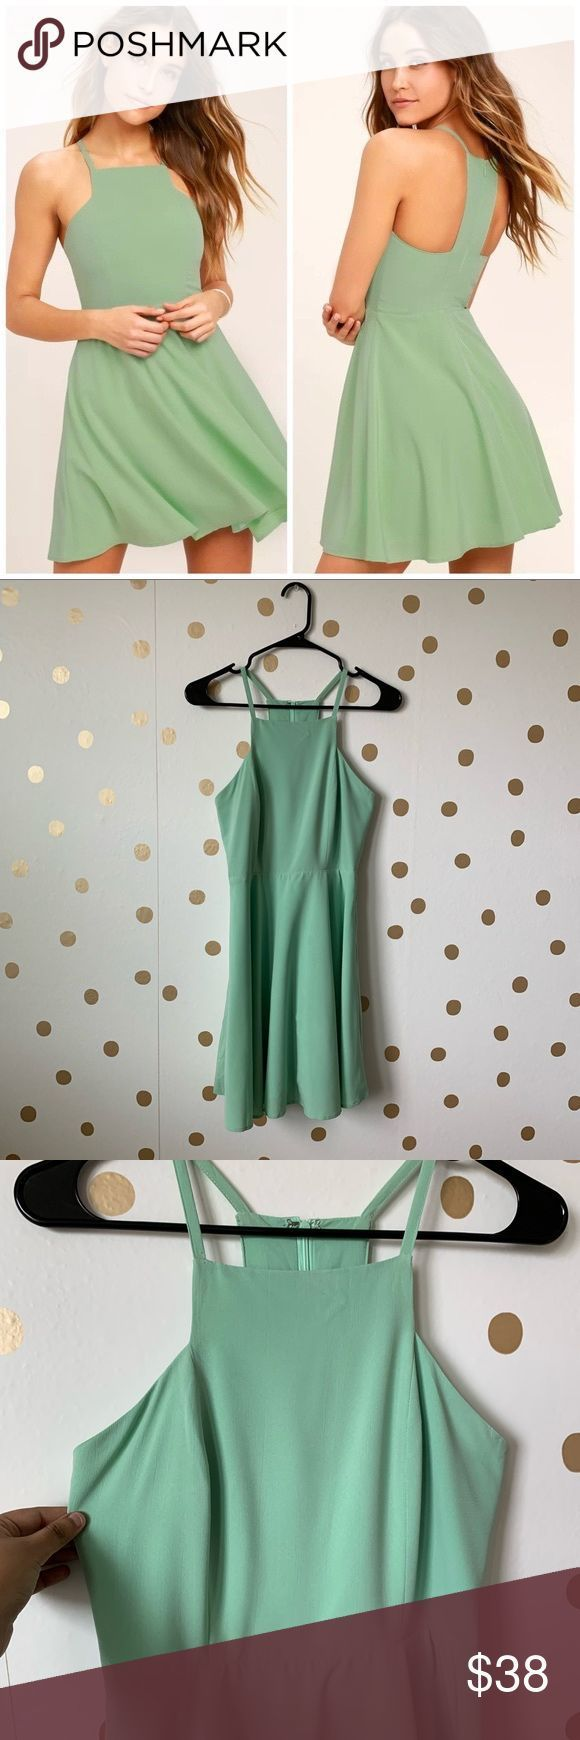 Lulus Call To Charms Sage Green Skater Dress Lulus Call To Charms Sage Gre#BeautyBlog #MakeupOfTheDay #MakeupByMe #MakeupLife #MakeupTutorial #InstaMakeup #MakeupLover #Cosmetics #BeautyBasics #MakeupJunkie #InstaBeauty #ILoveMakeup #WakeUpAndMakeup #MakeupGuru #BeautyProducts #sagegreendress Lulus Call To Charms Sage Green Skater Dress Lulus Call To Charms Sage Gre#BeautyBlog #MakeupOfTheDay #MakeupByMe #MakeupLife #MakeupTutorial #InstaMakeup #MakeupLover #Cosmetics #BeautyBasics #MakeupJunkie #sagegreendress